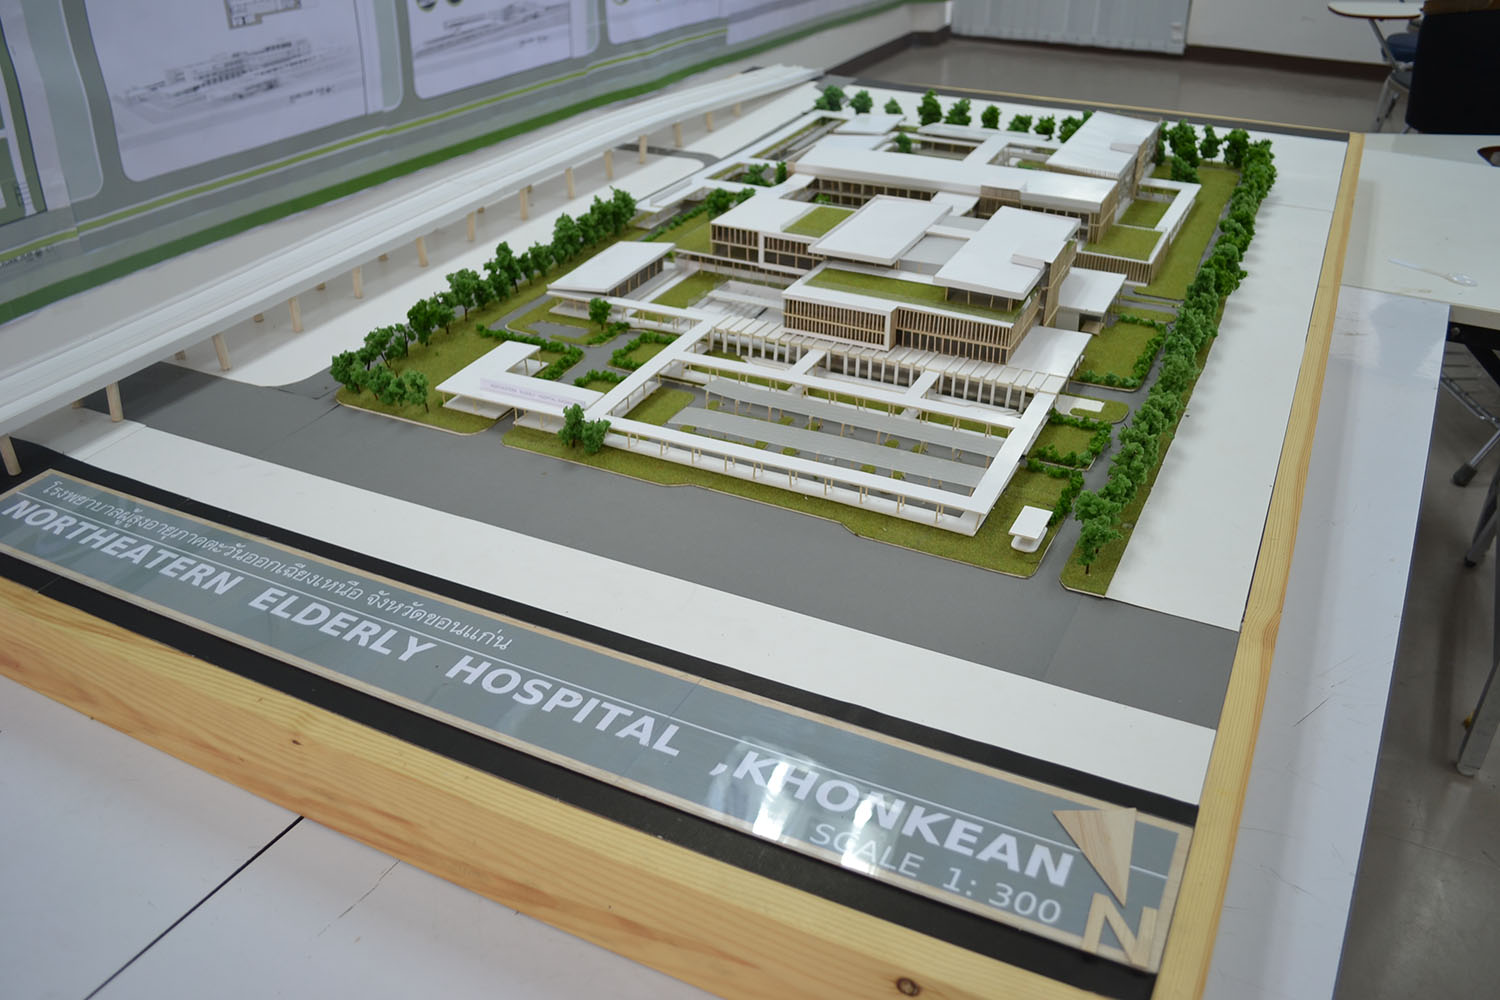 Architecture Thesis Academic Year 2012